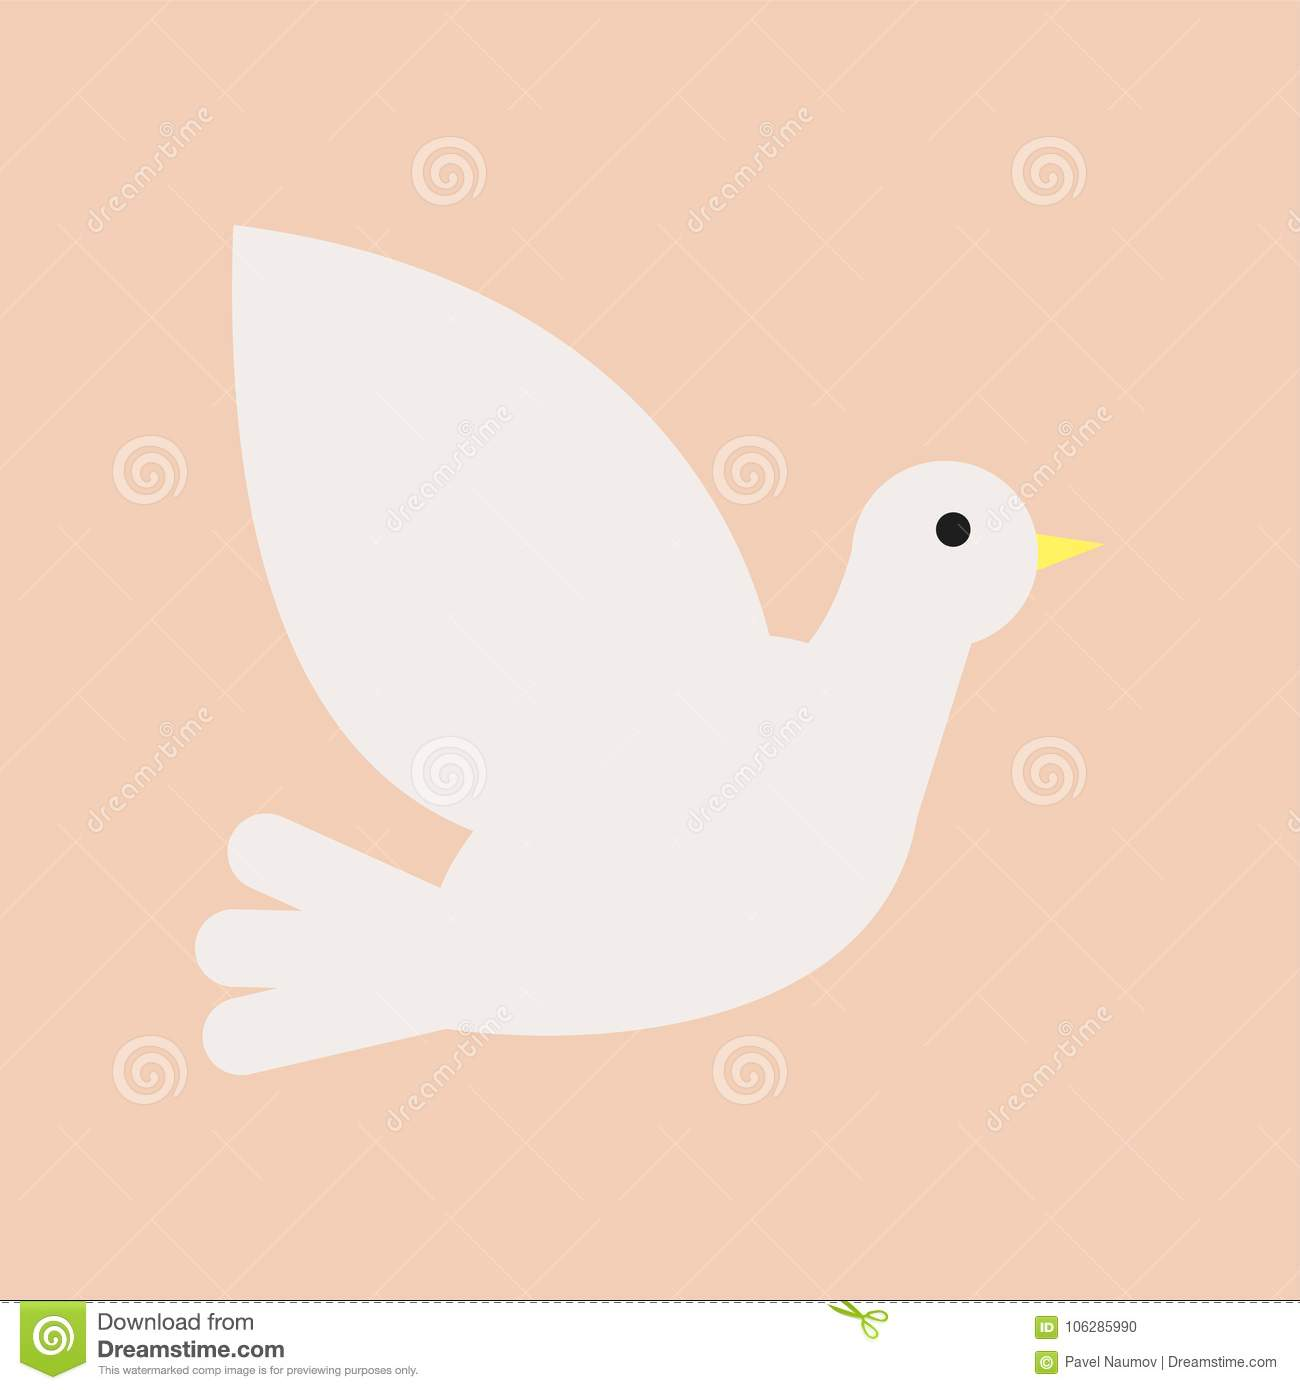 Christian white dove. Symbol of Holy Spirit and peace. Isolated flat vector icon. Design element for church, christian